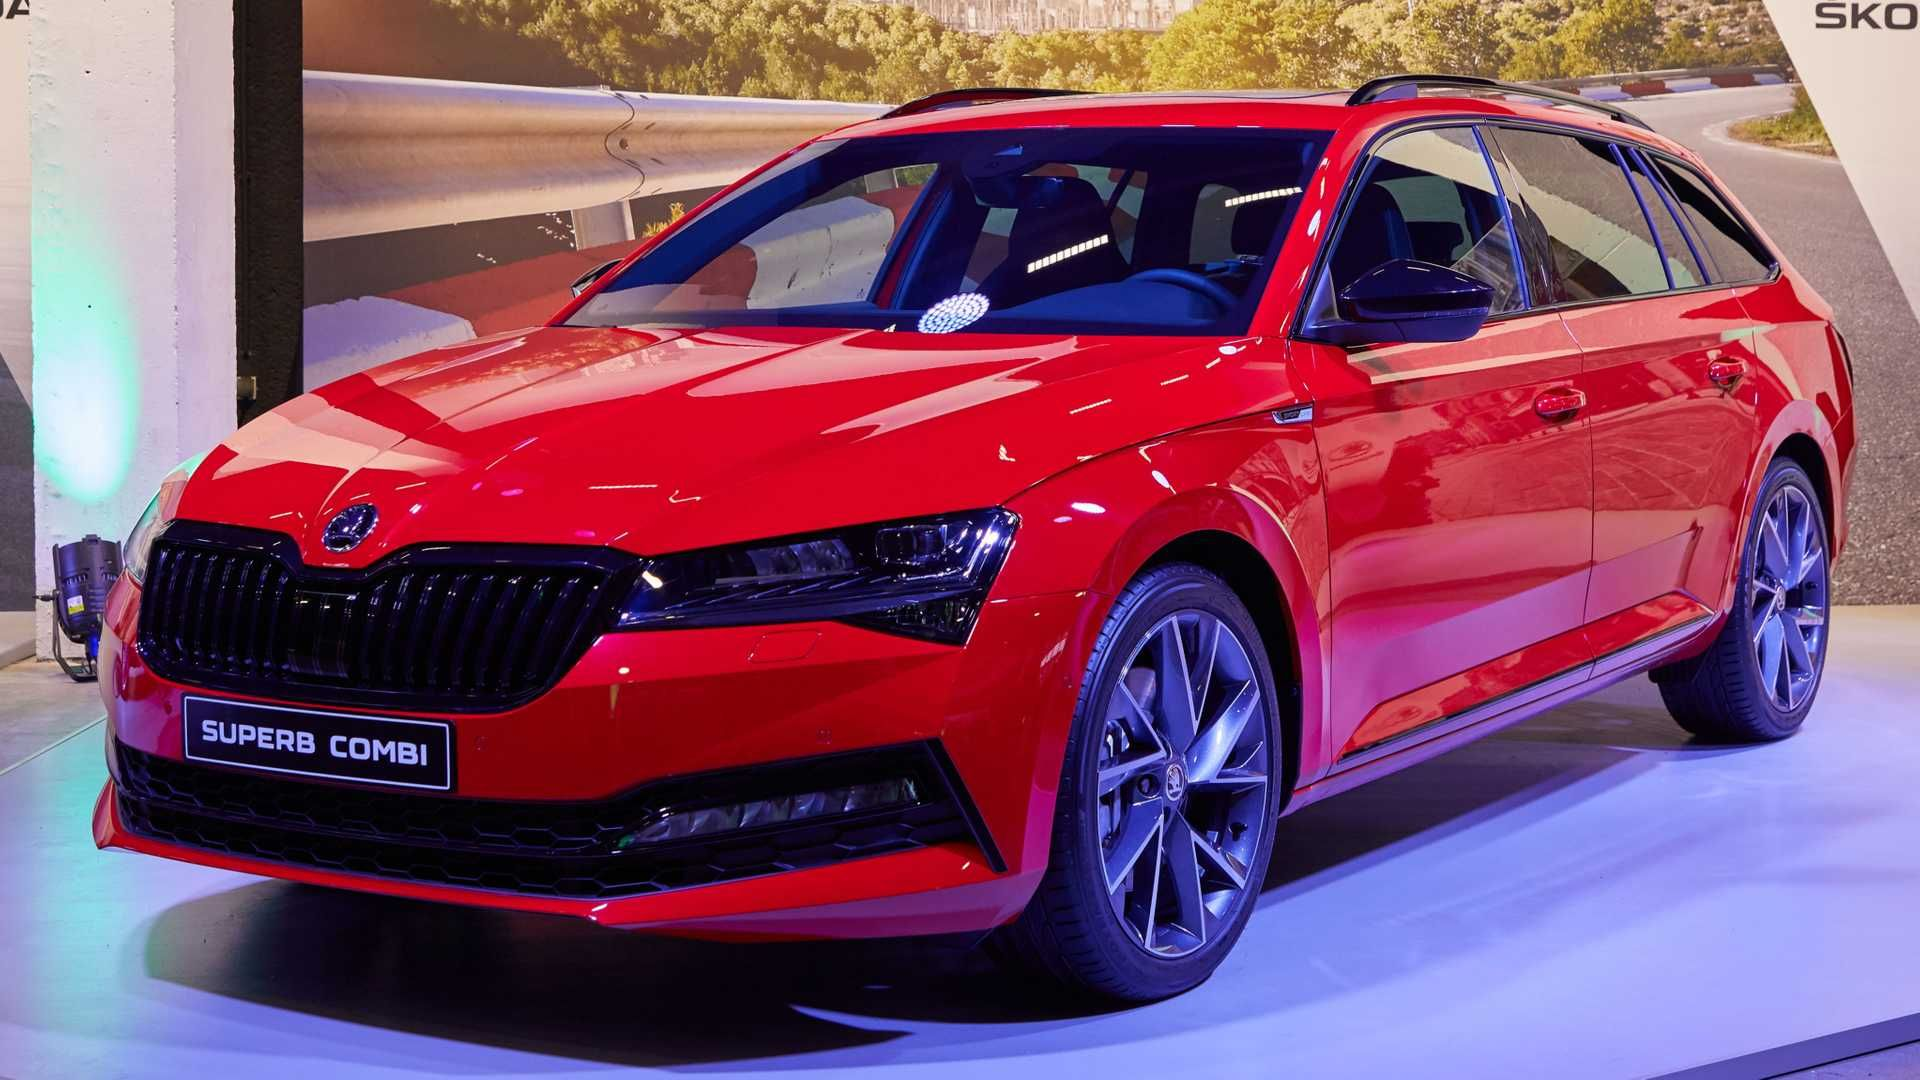 Best Of Review 2020 Skoda Superb Sportline Review And Images And Review Di 2020